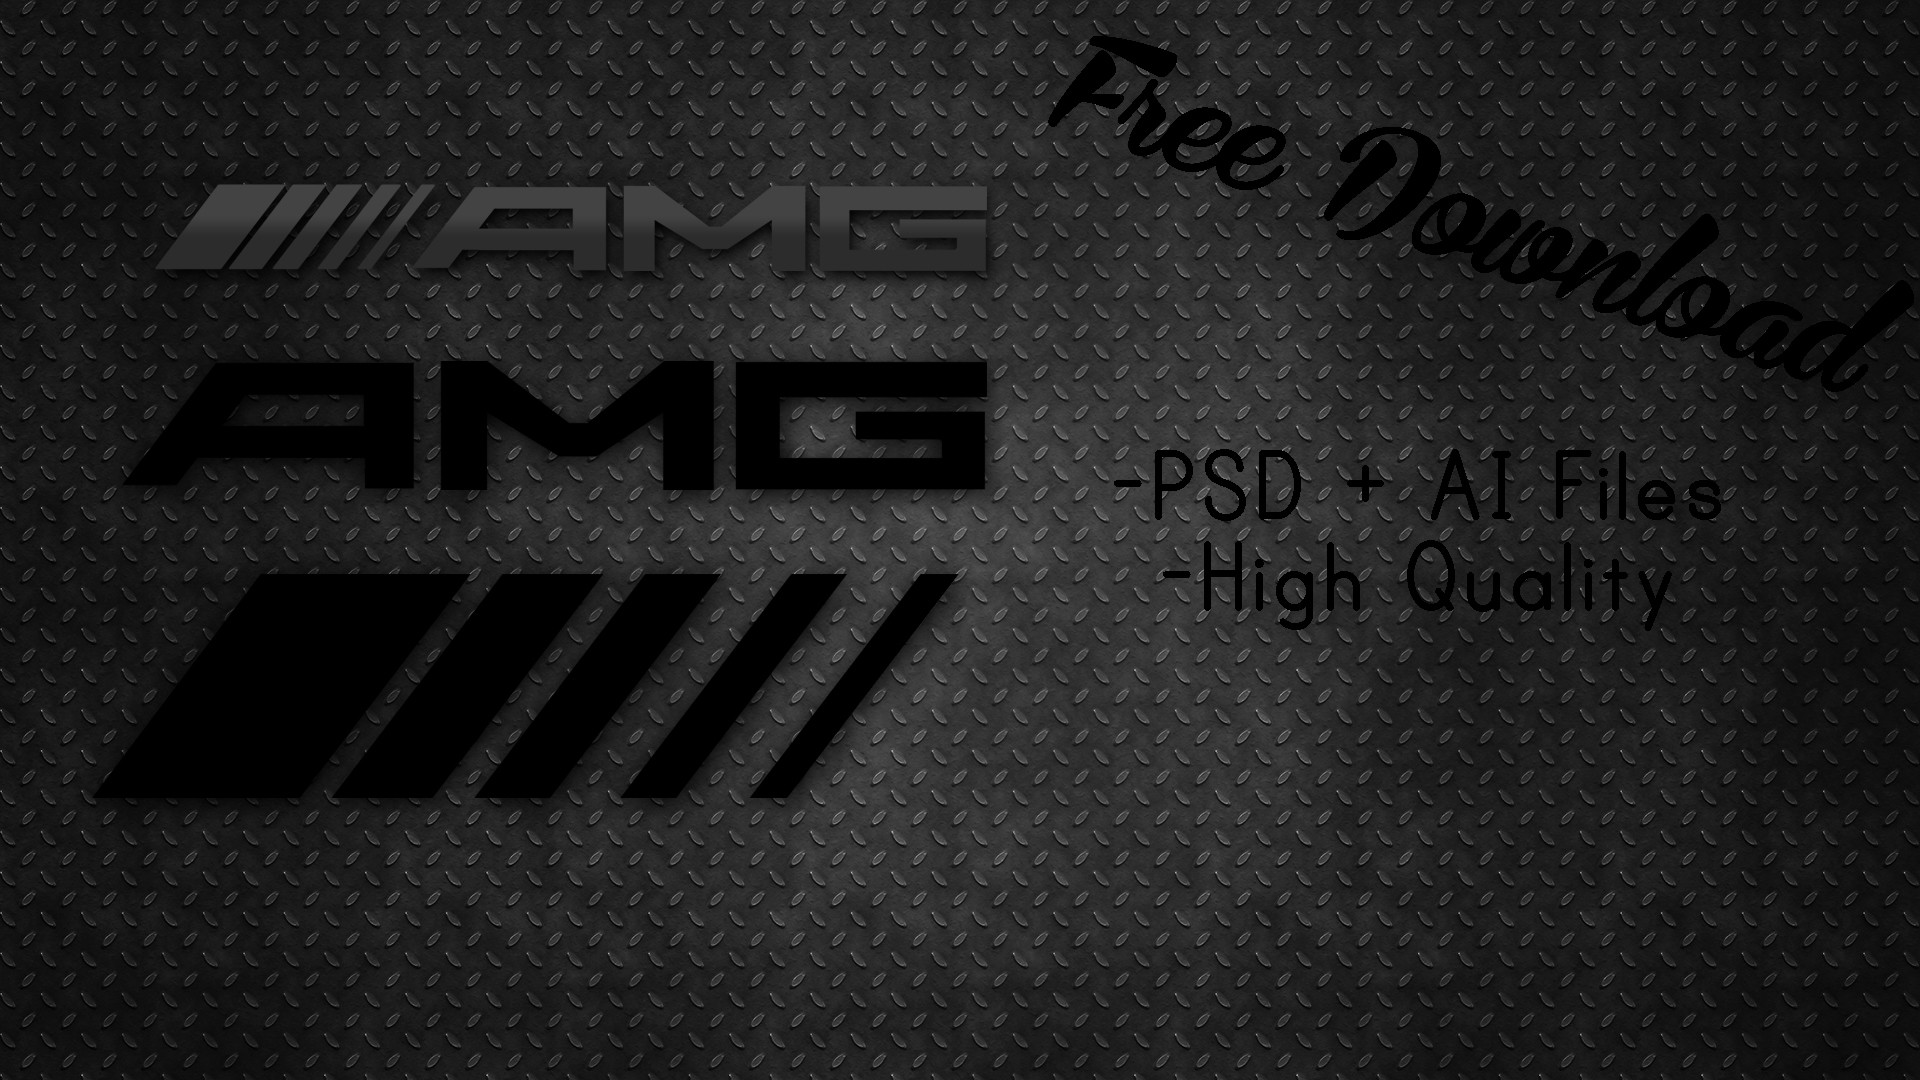 … Free AMG Logo Template! [High Quality + Vector] by exocrypton